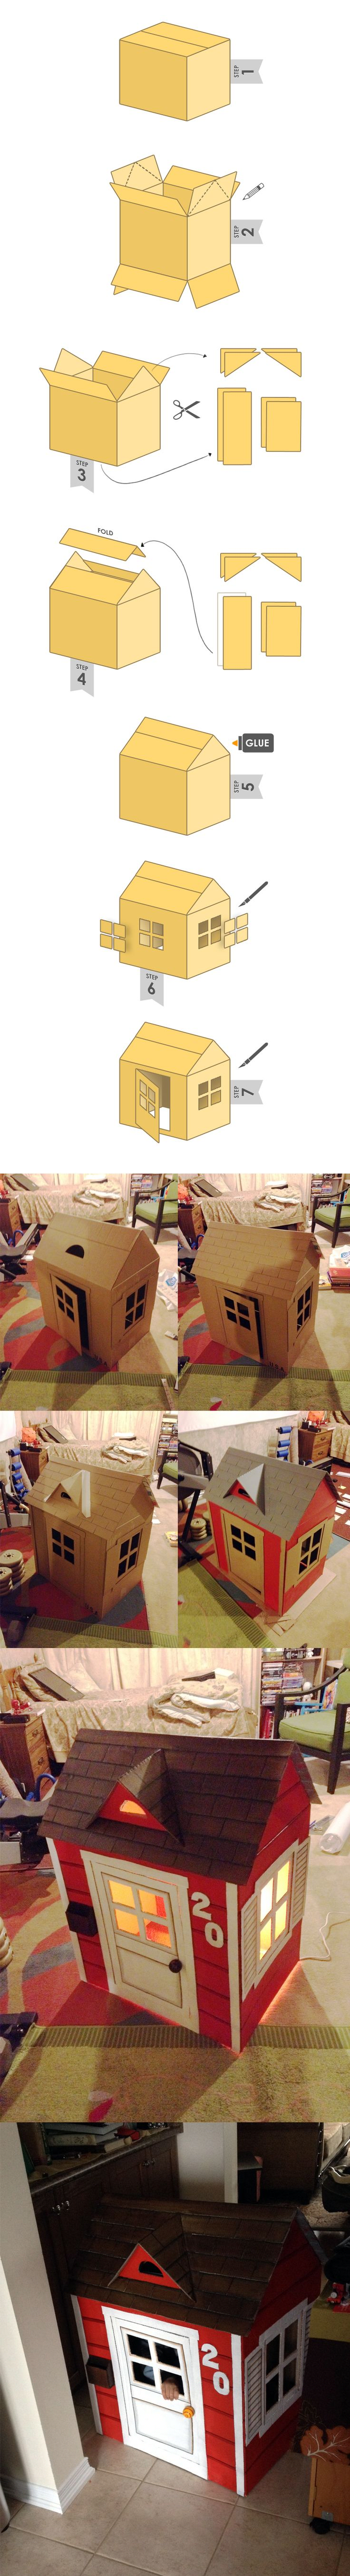 Cardboard box house. Step 0: Buy something that comes in a giant box. Proceed to Step 1. casa com caixa de papelão